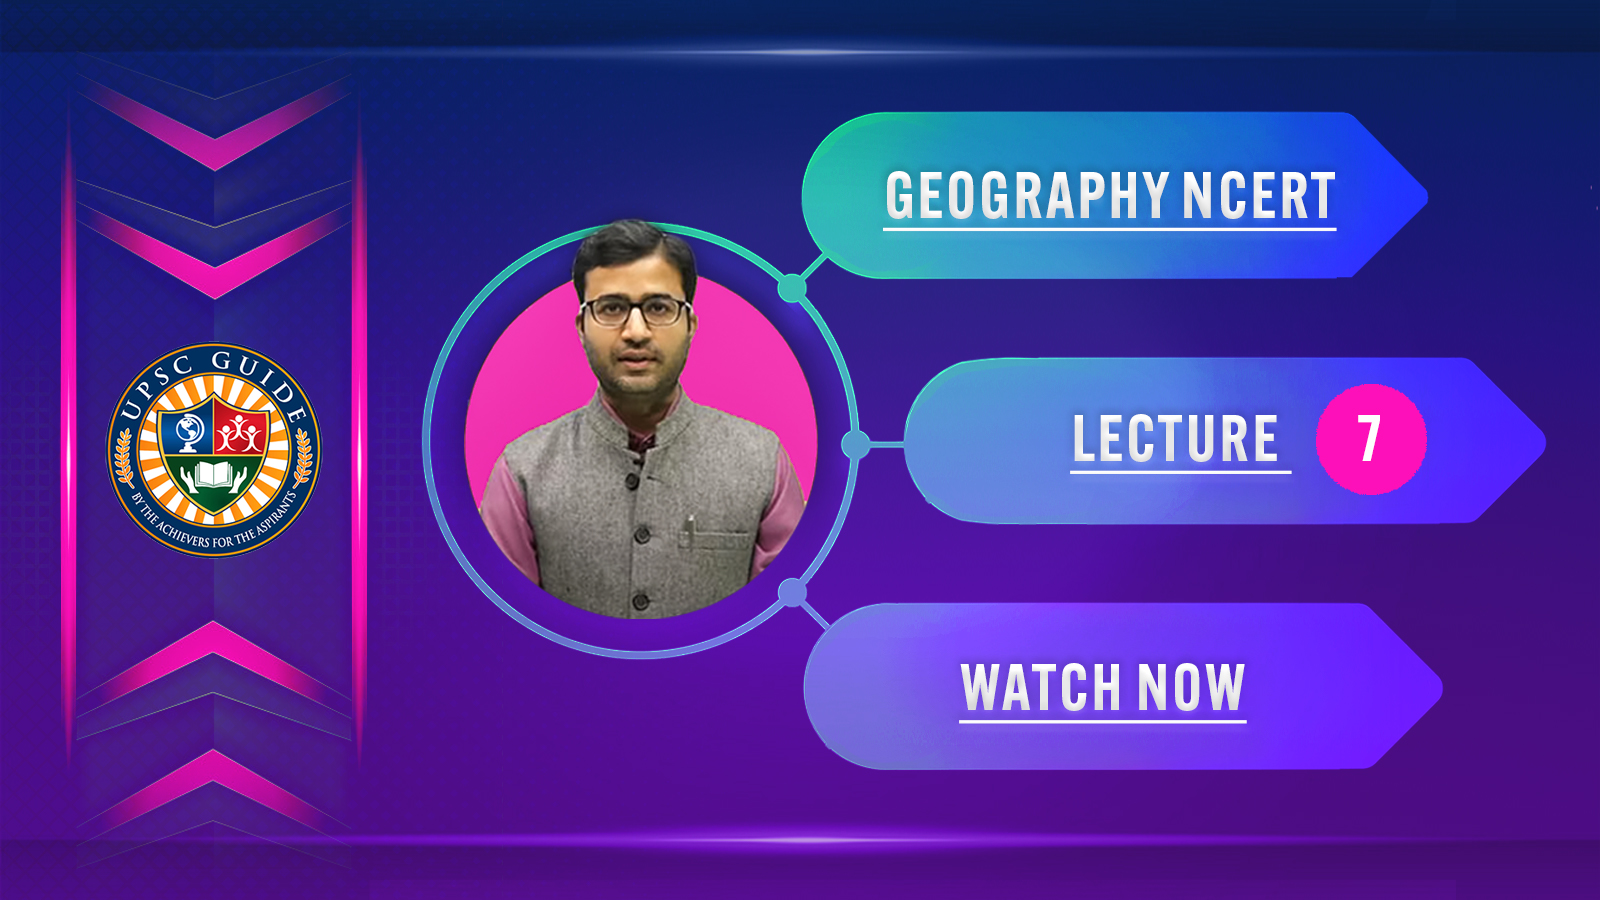 Geography || NCERT || Lect 07 || By Amit Garg Sir